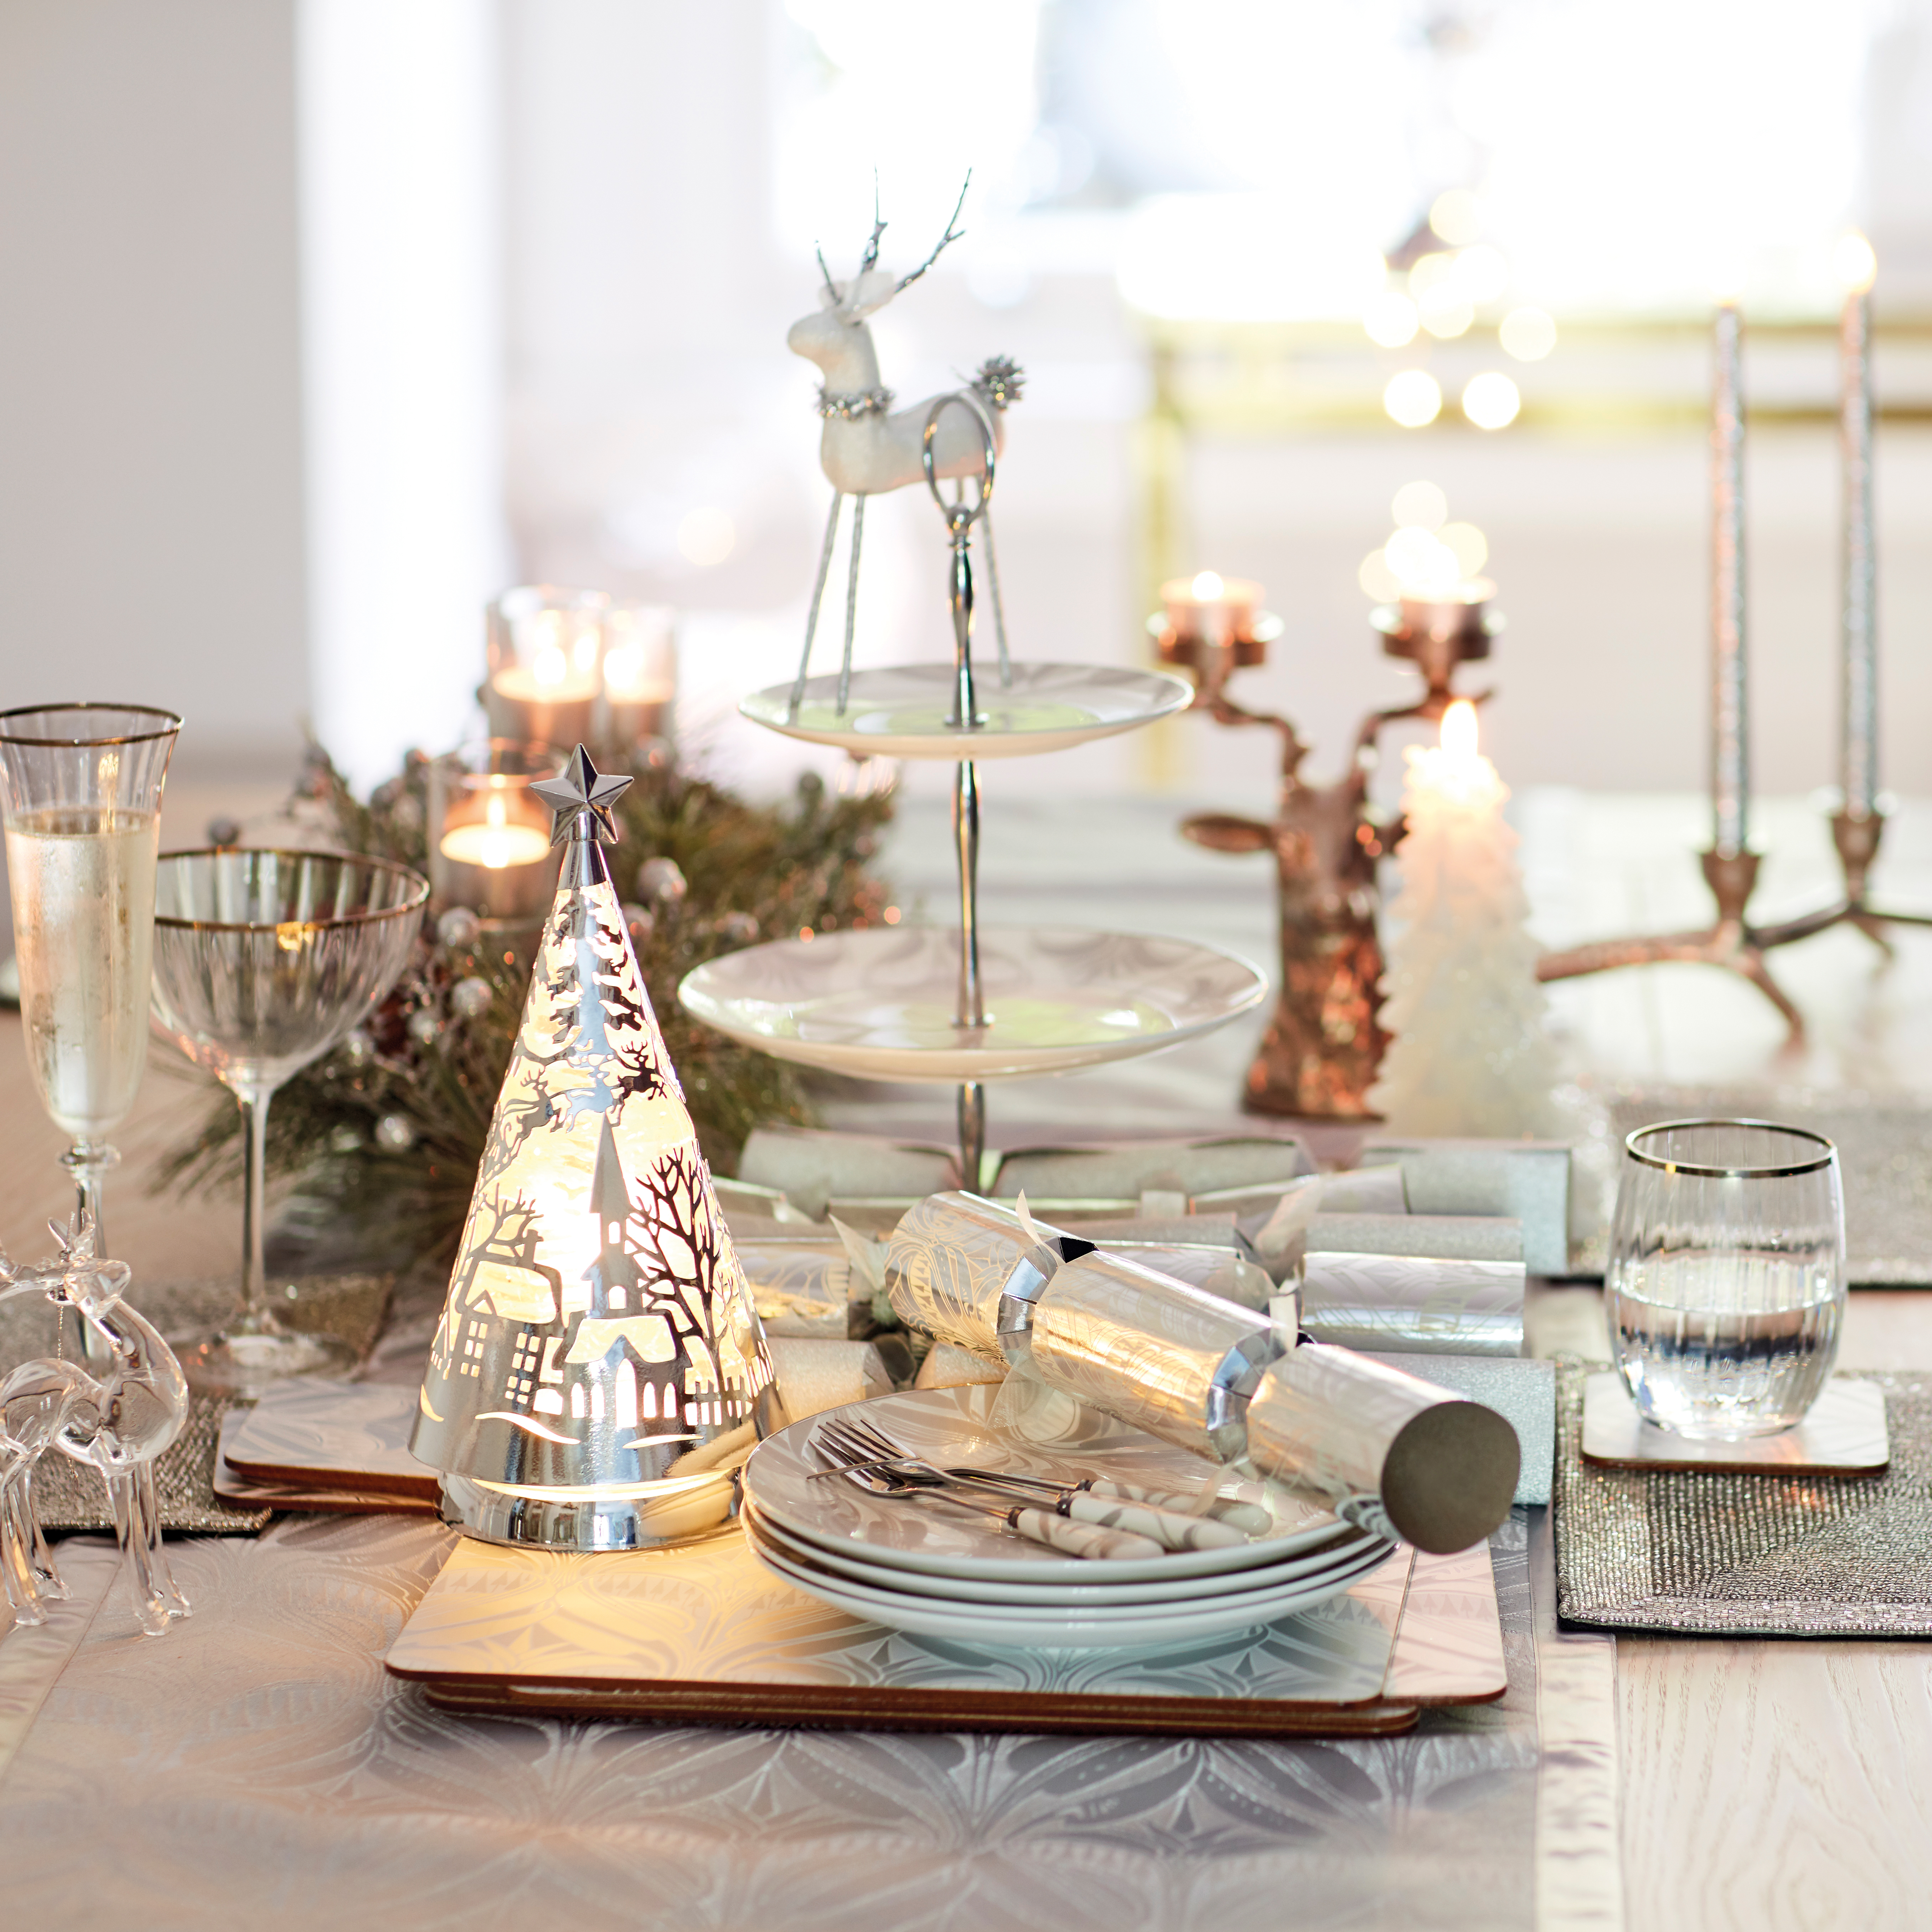 Interesting ways to decorate your home for Christmas